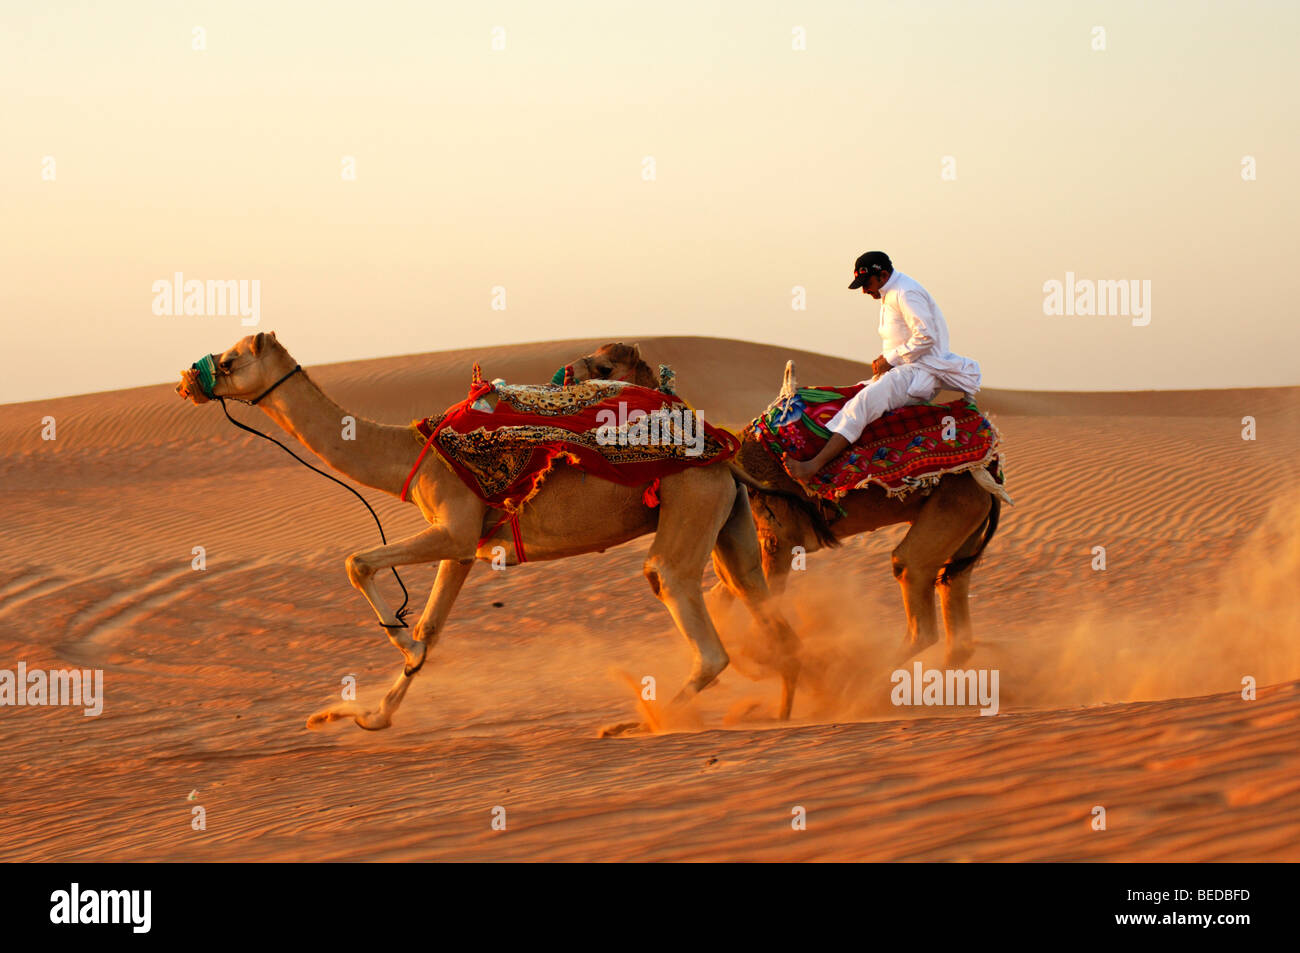 Wild camel ride, runaway camels with a desperate jockey, Dubai, United Arab Emirates, Middle East - Stock Image